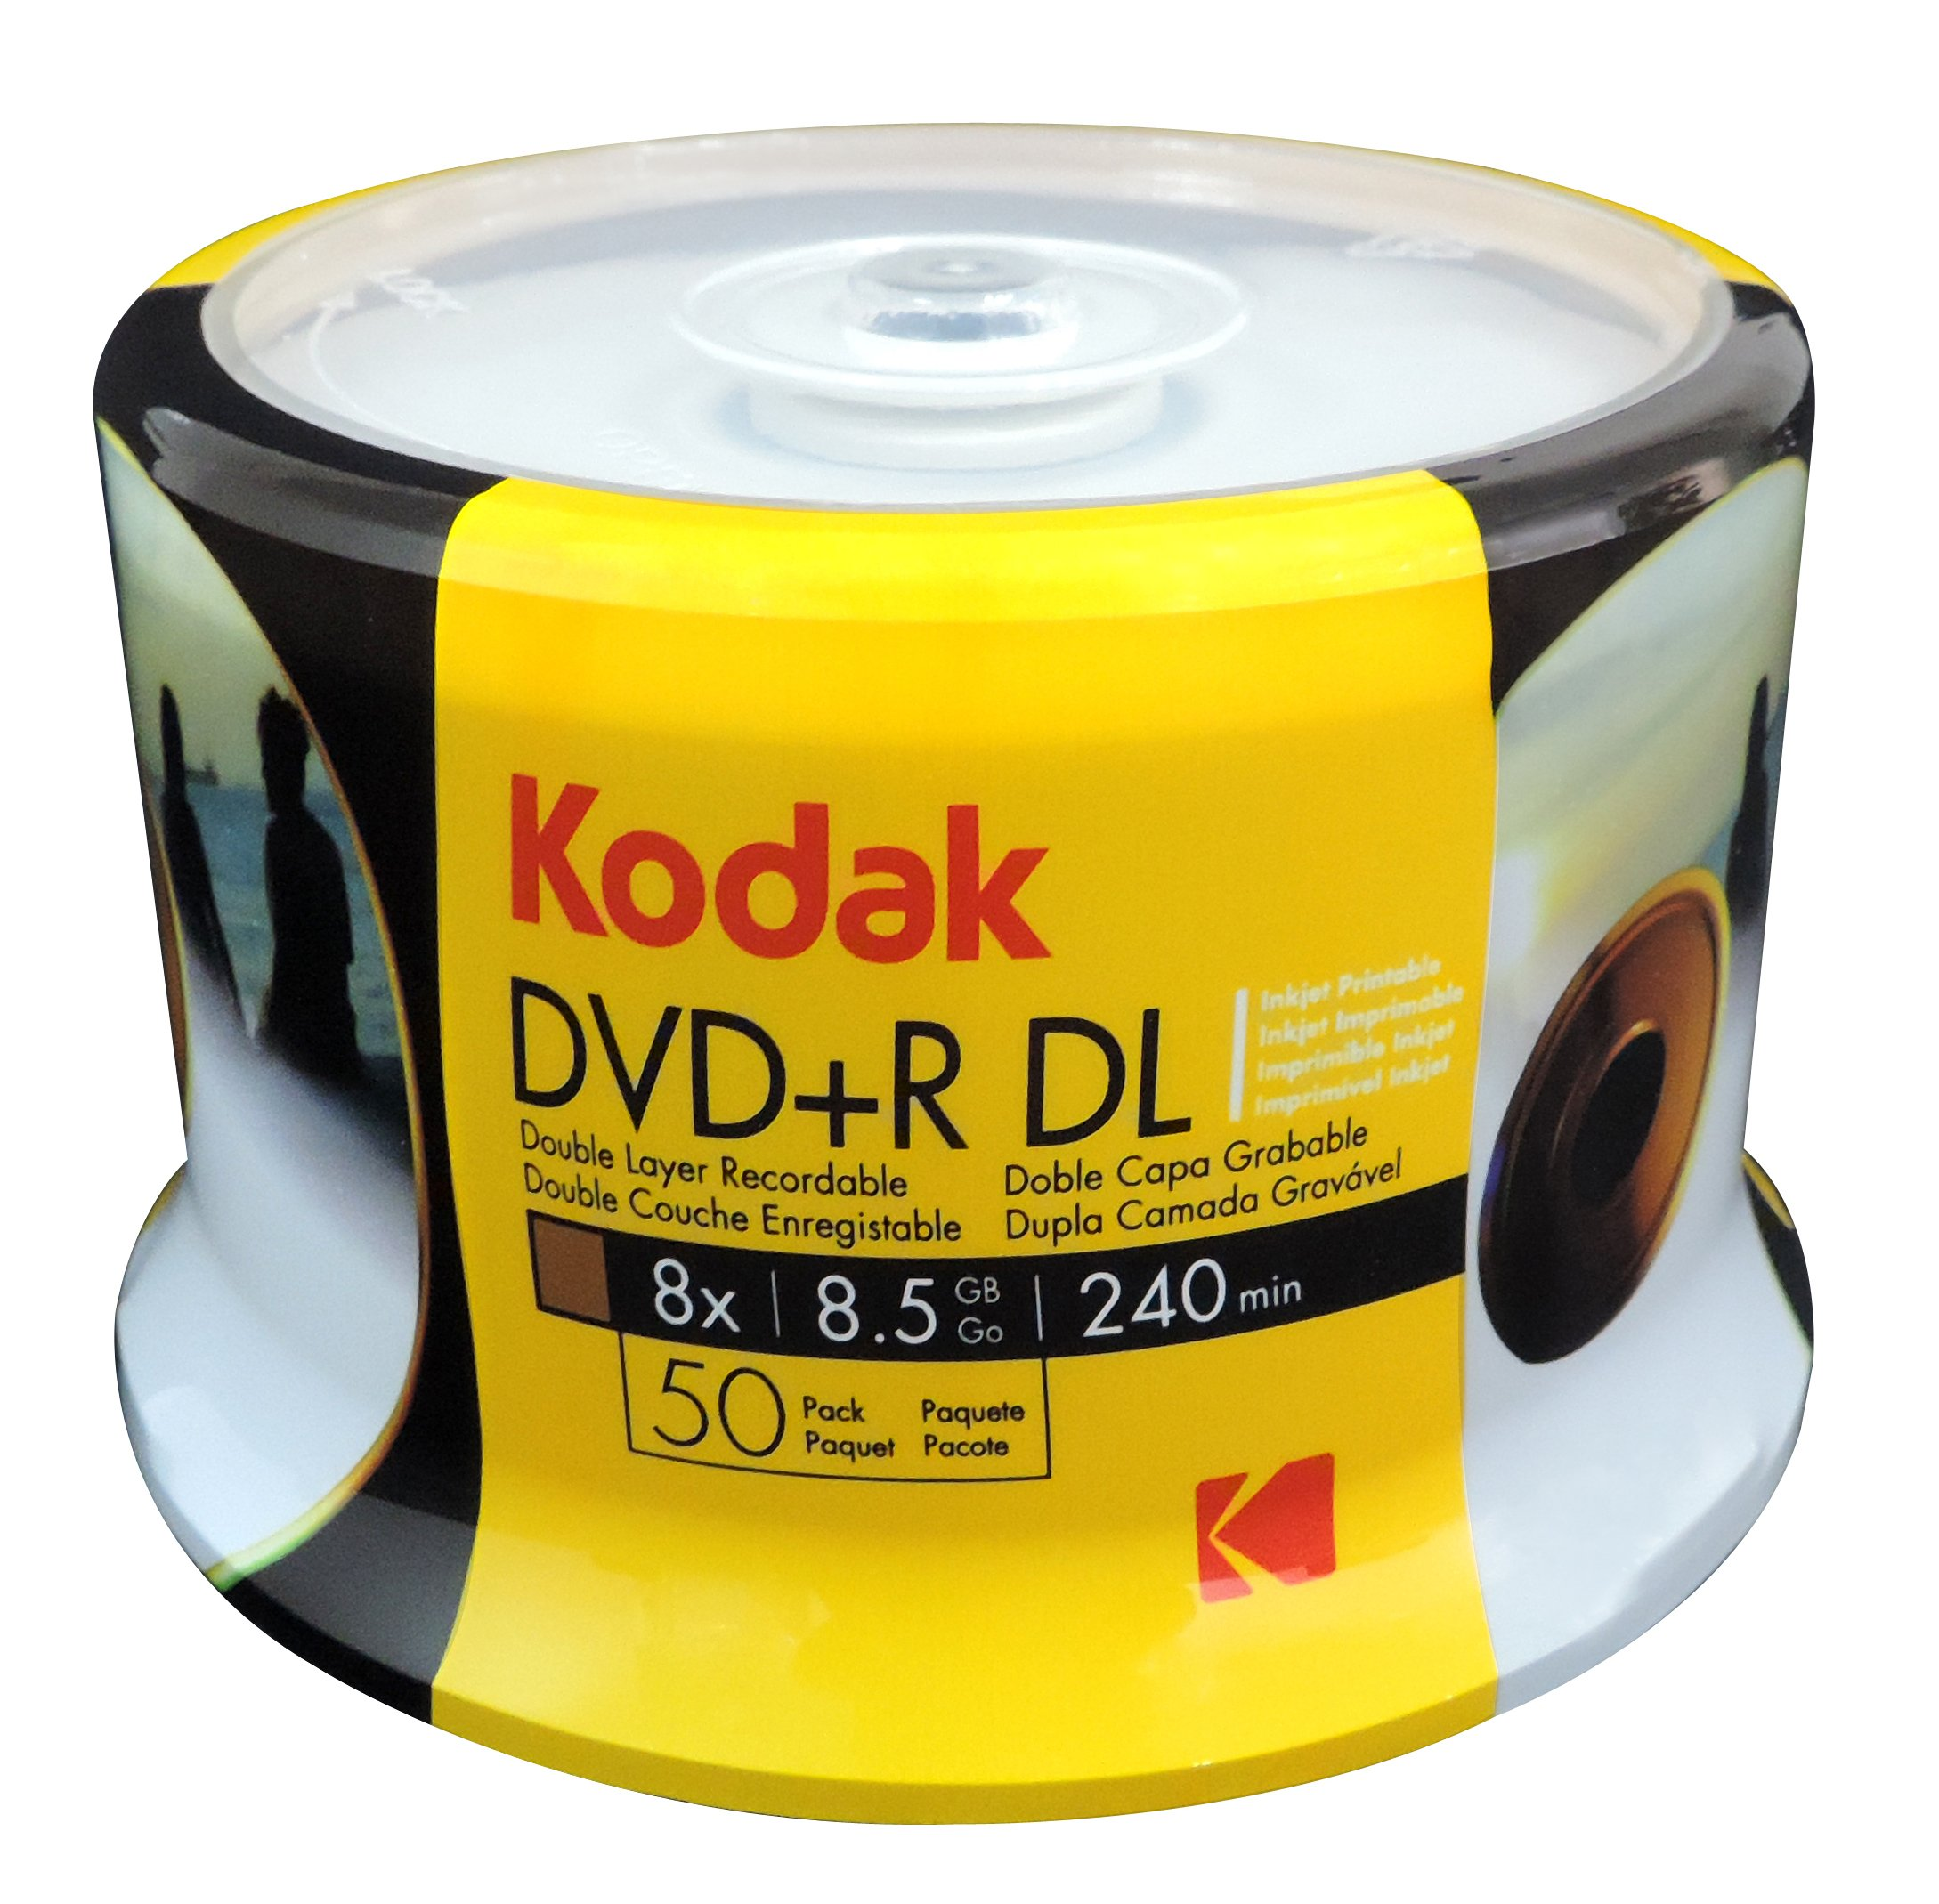 KODAK DVD+R DL 8x 8.5GB 50-Pack Cakebox, White Inkjet Printable by Kodak